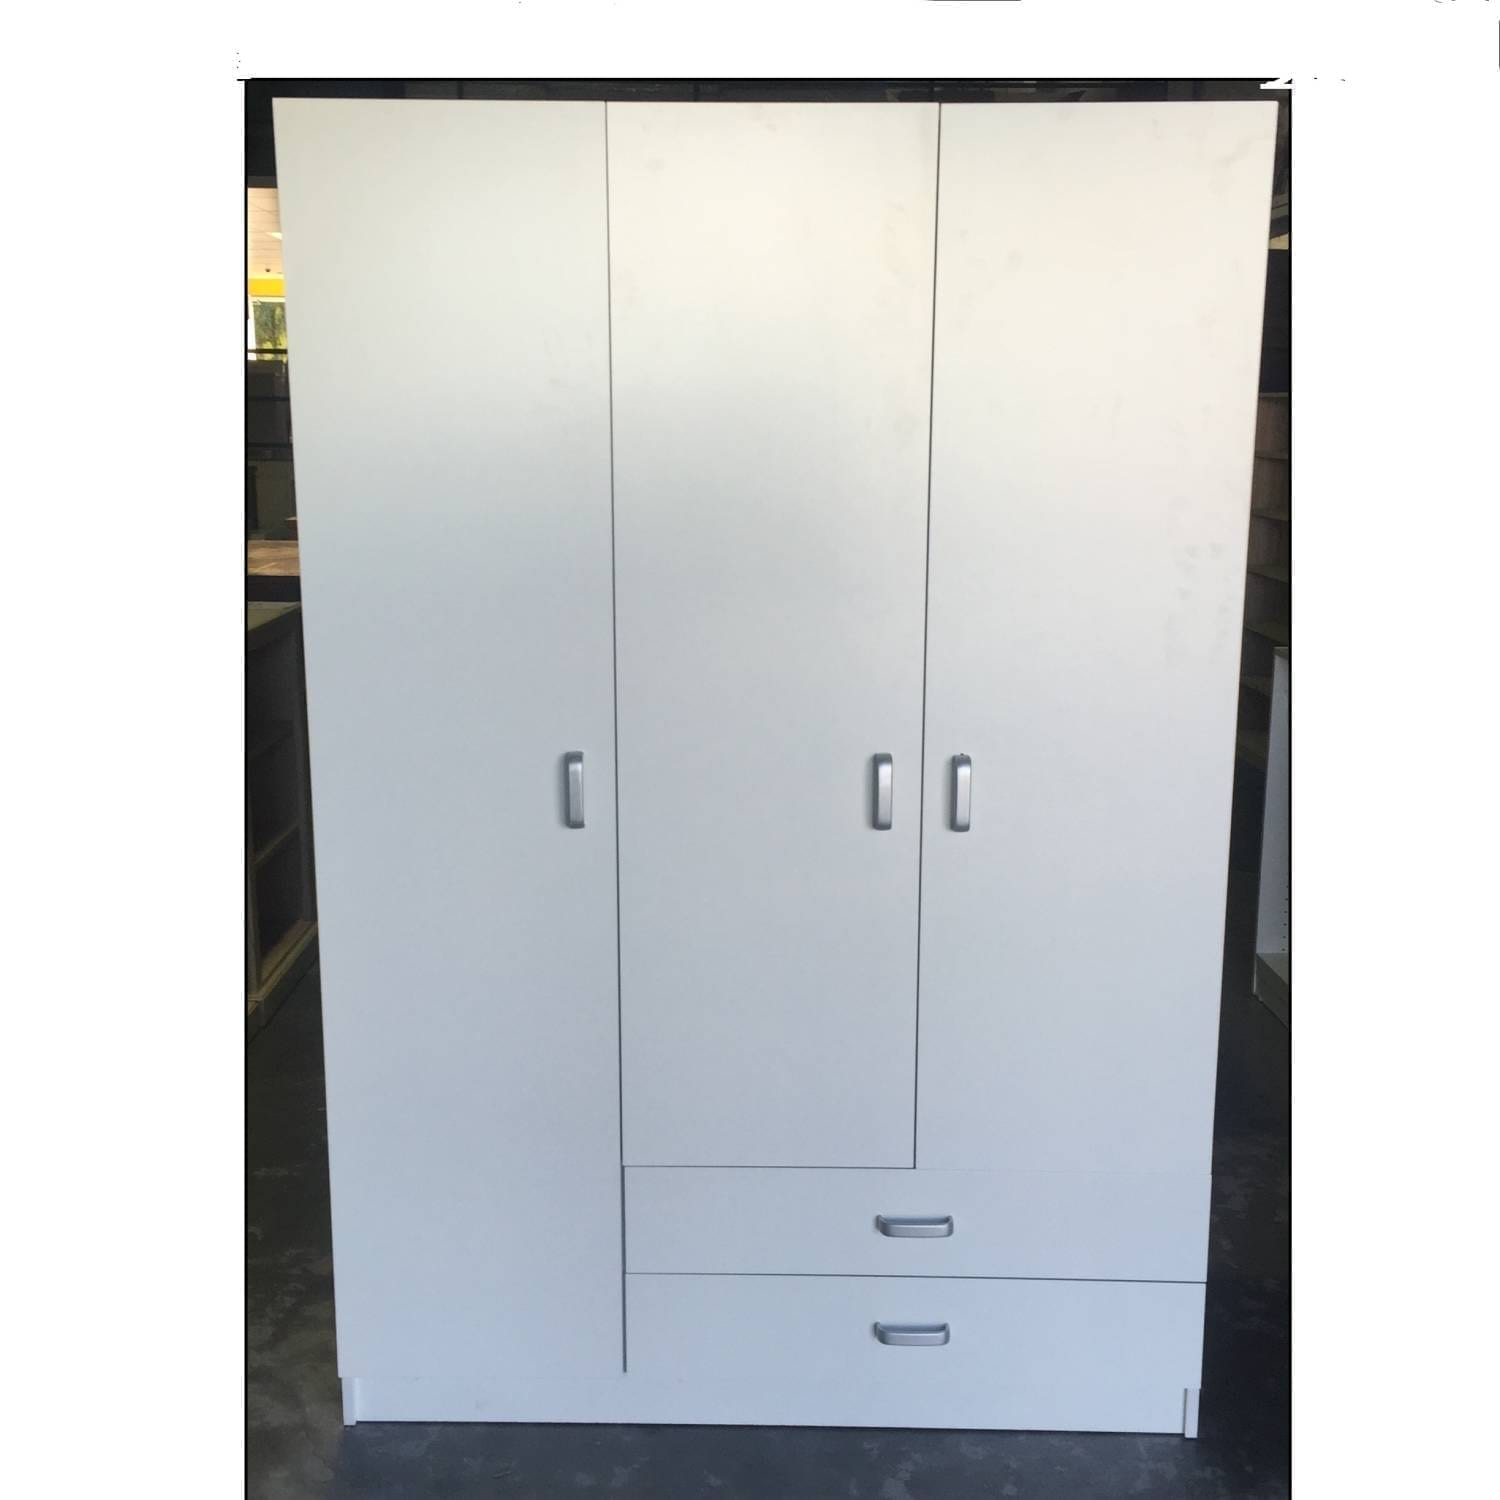 Rta wardrobe 1200 3 door 2 drawers ebay for 1200 door